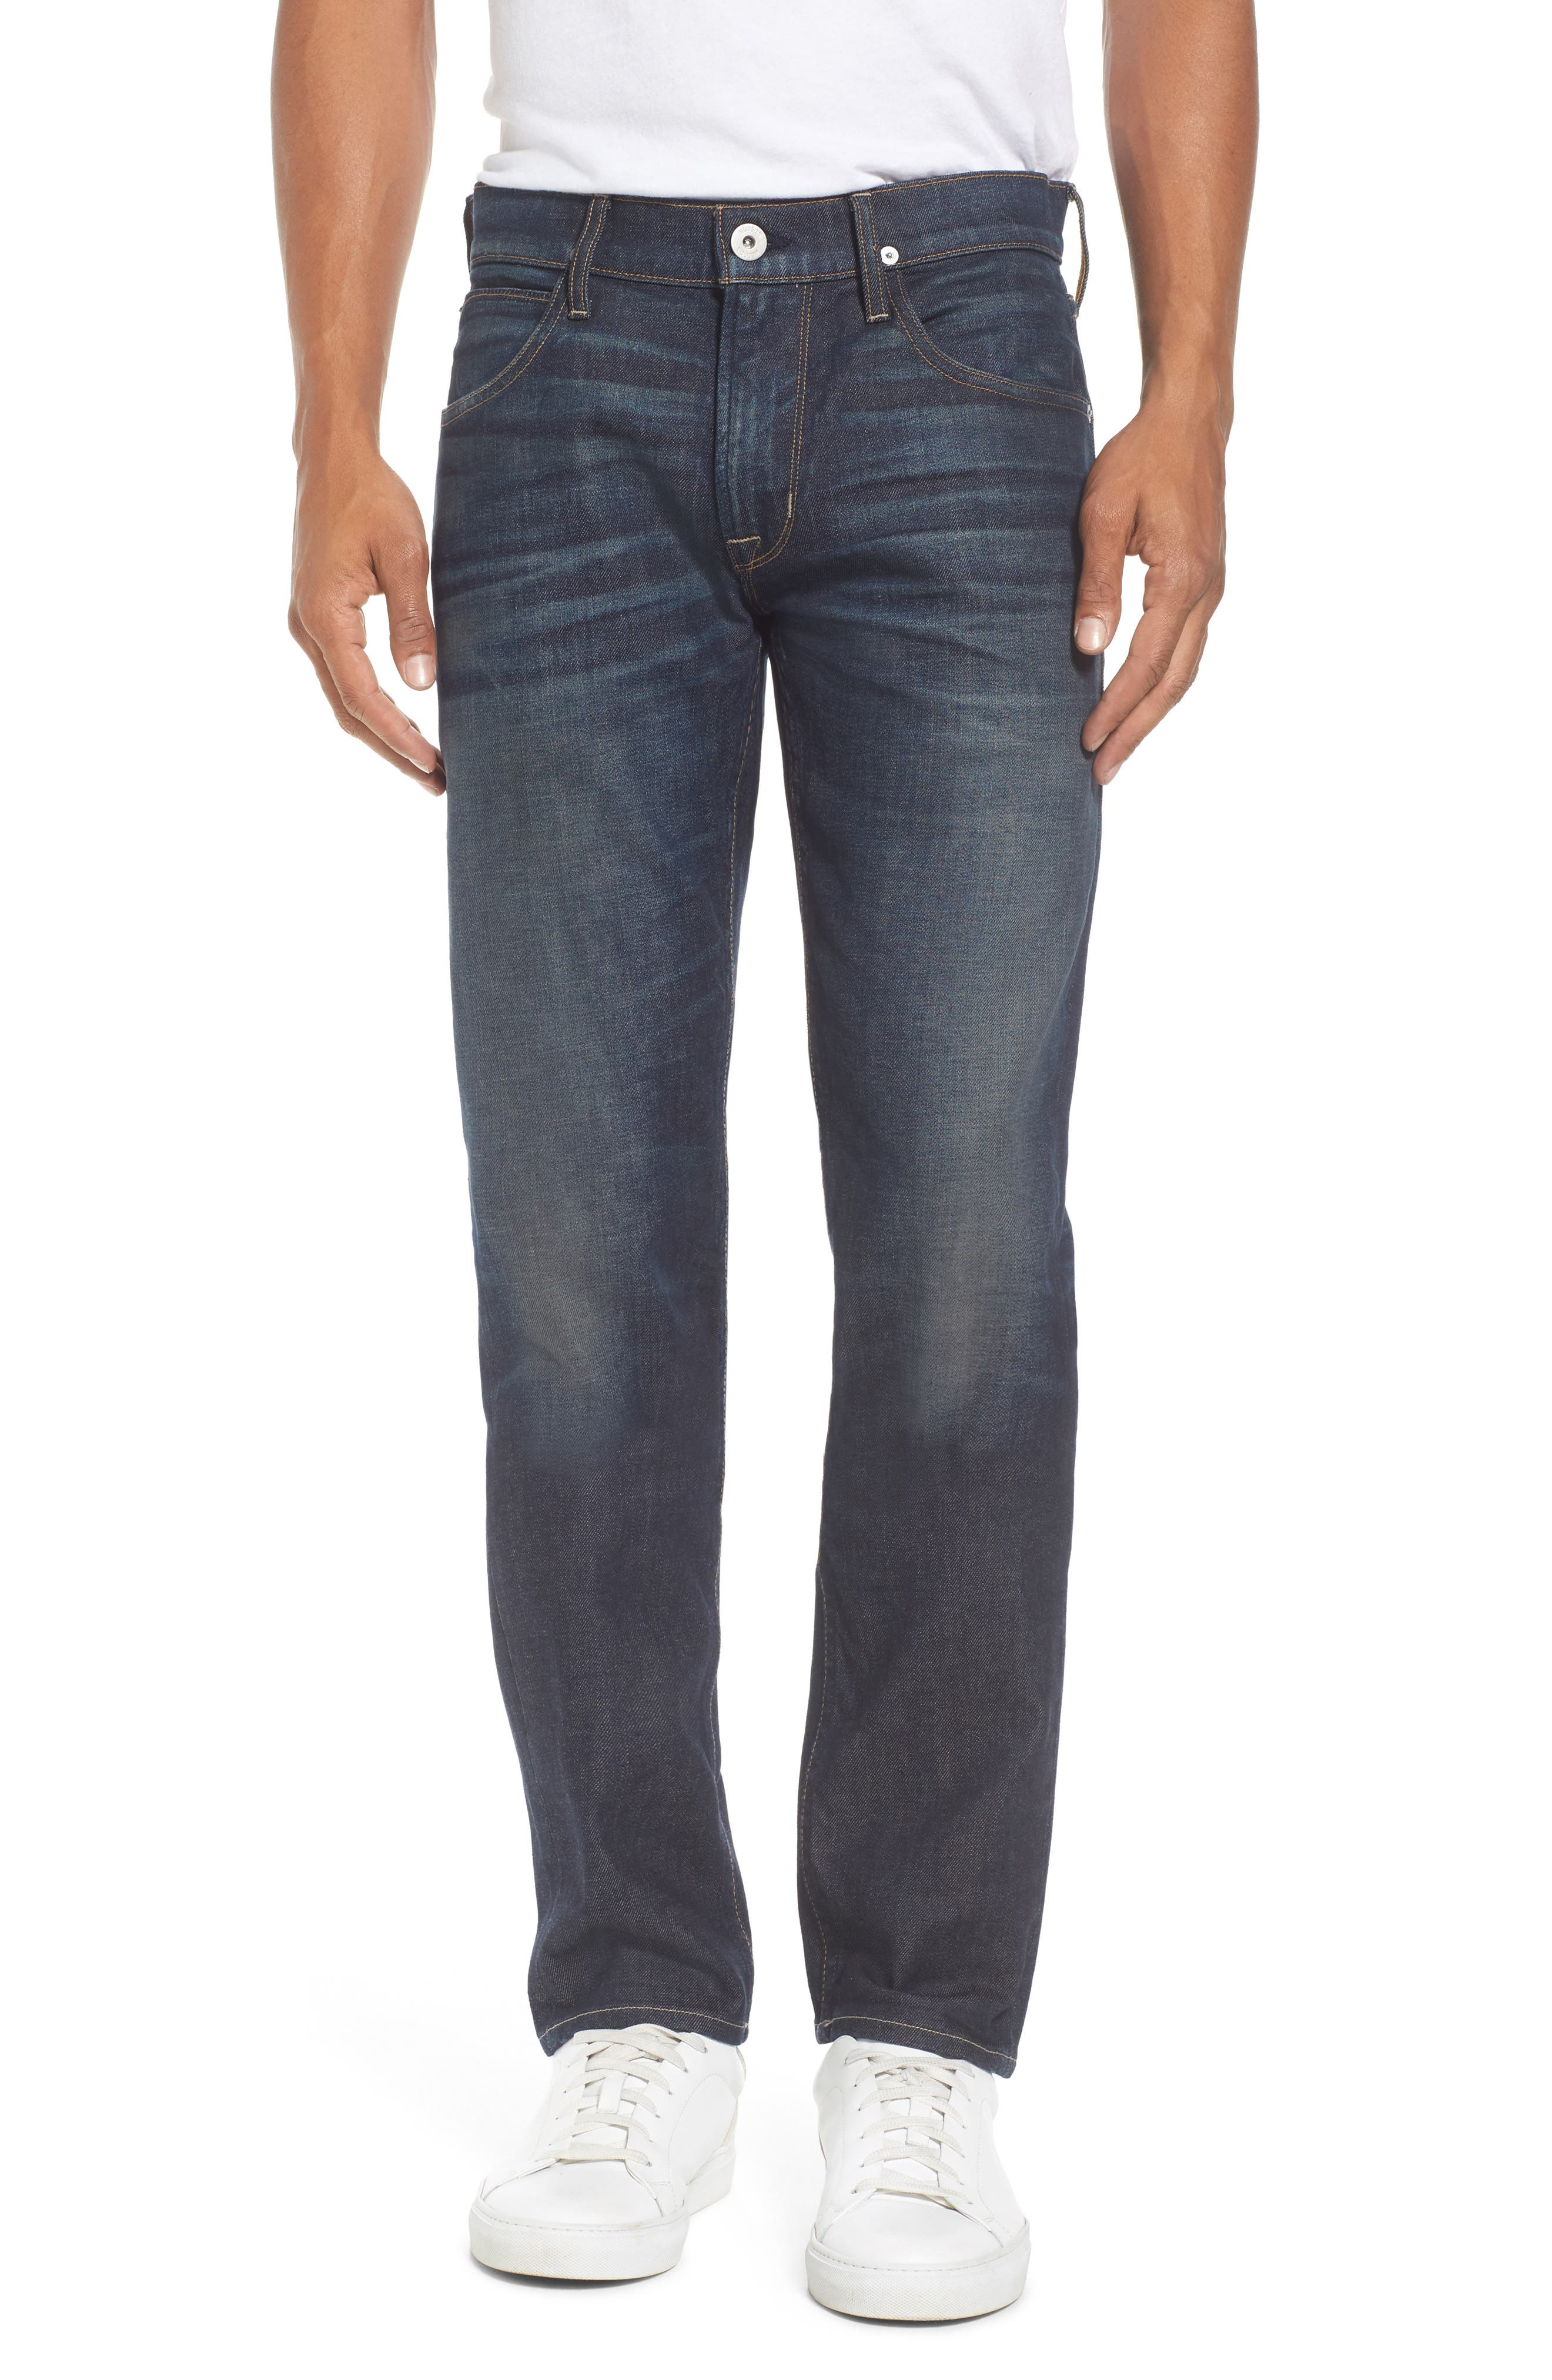 Main Image - Hudson Jeans Blake Slim Fit Jeans (Crusher)